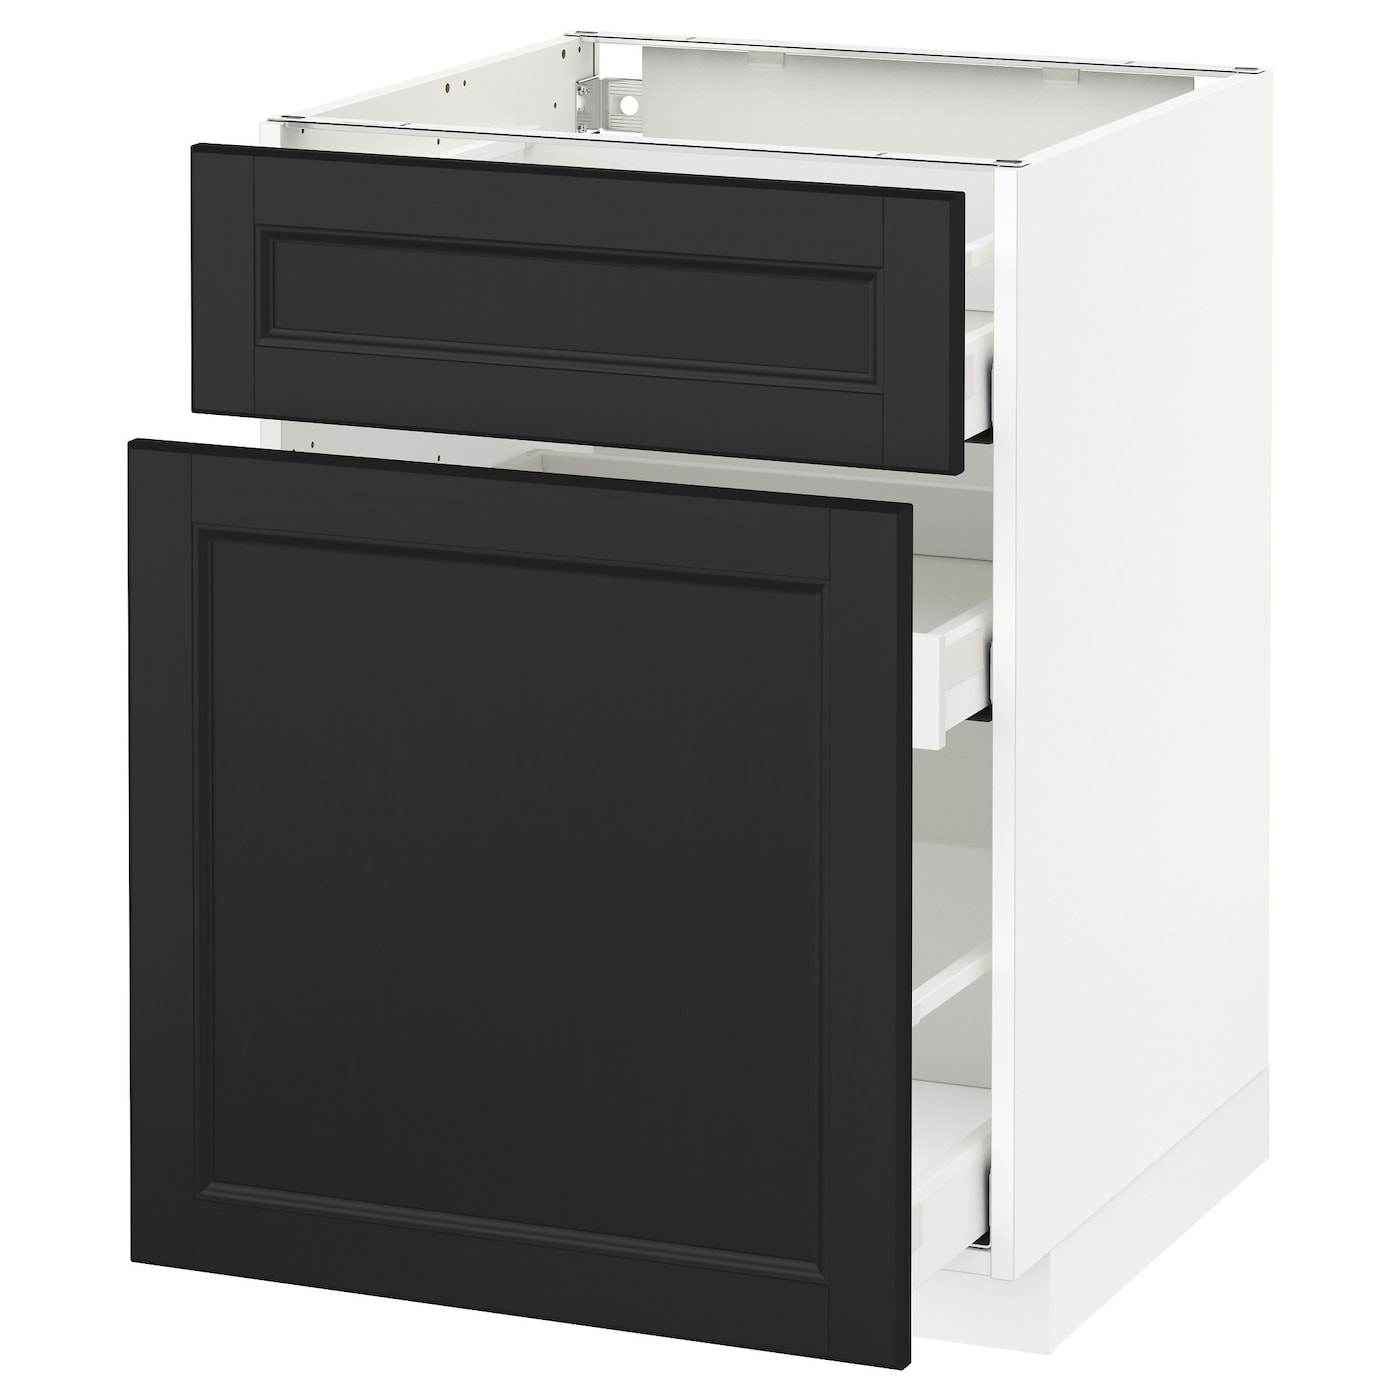 metod maximera base cabinet p out storage drawer white laxarby black brown 60x60 cm ikea. Black Bedroom Furniture Sets. Home Design Ideas